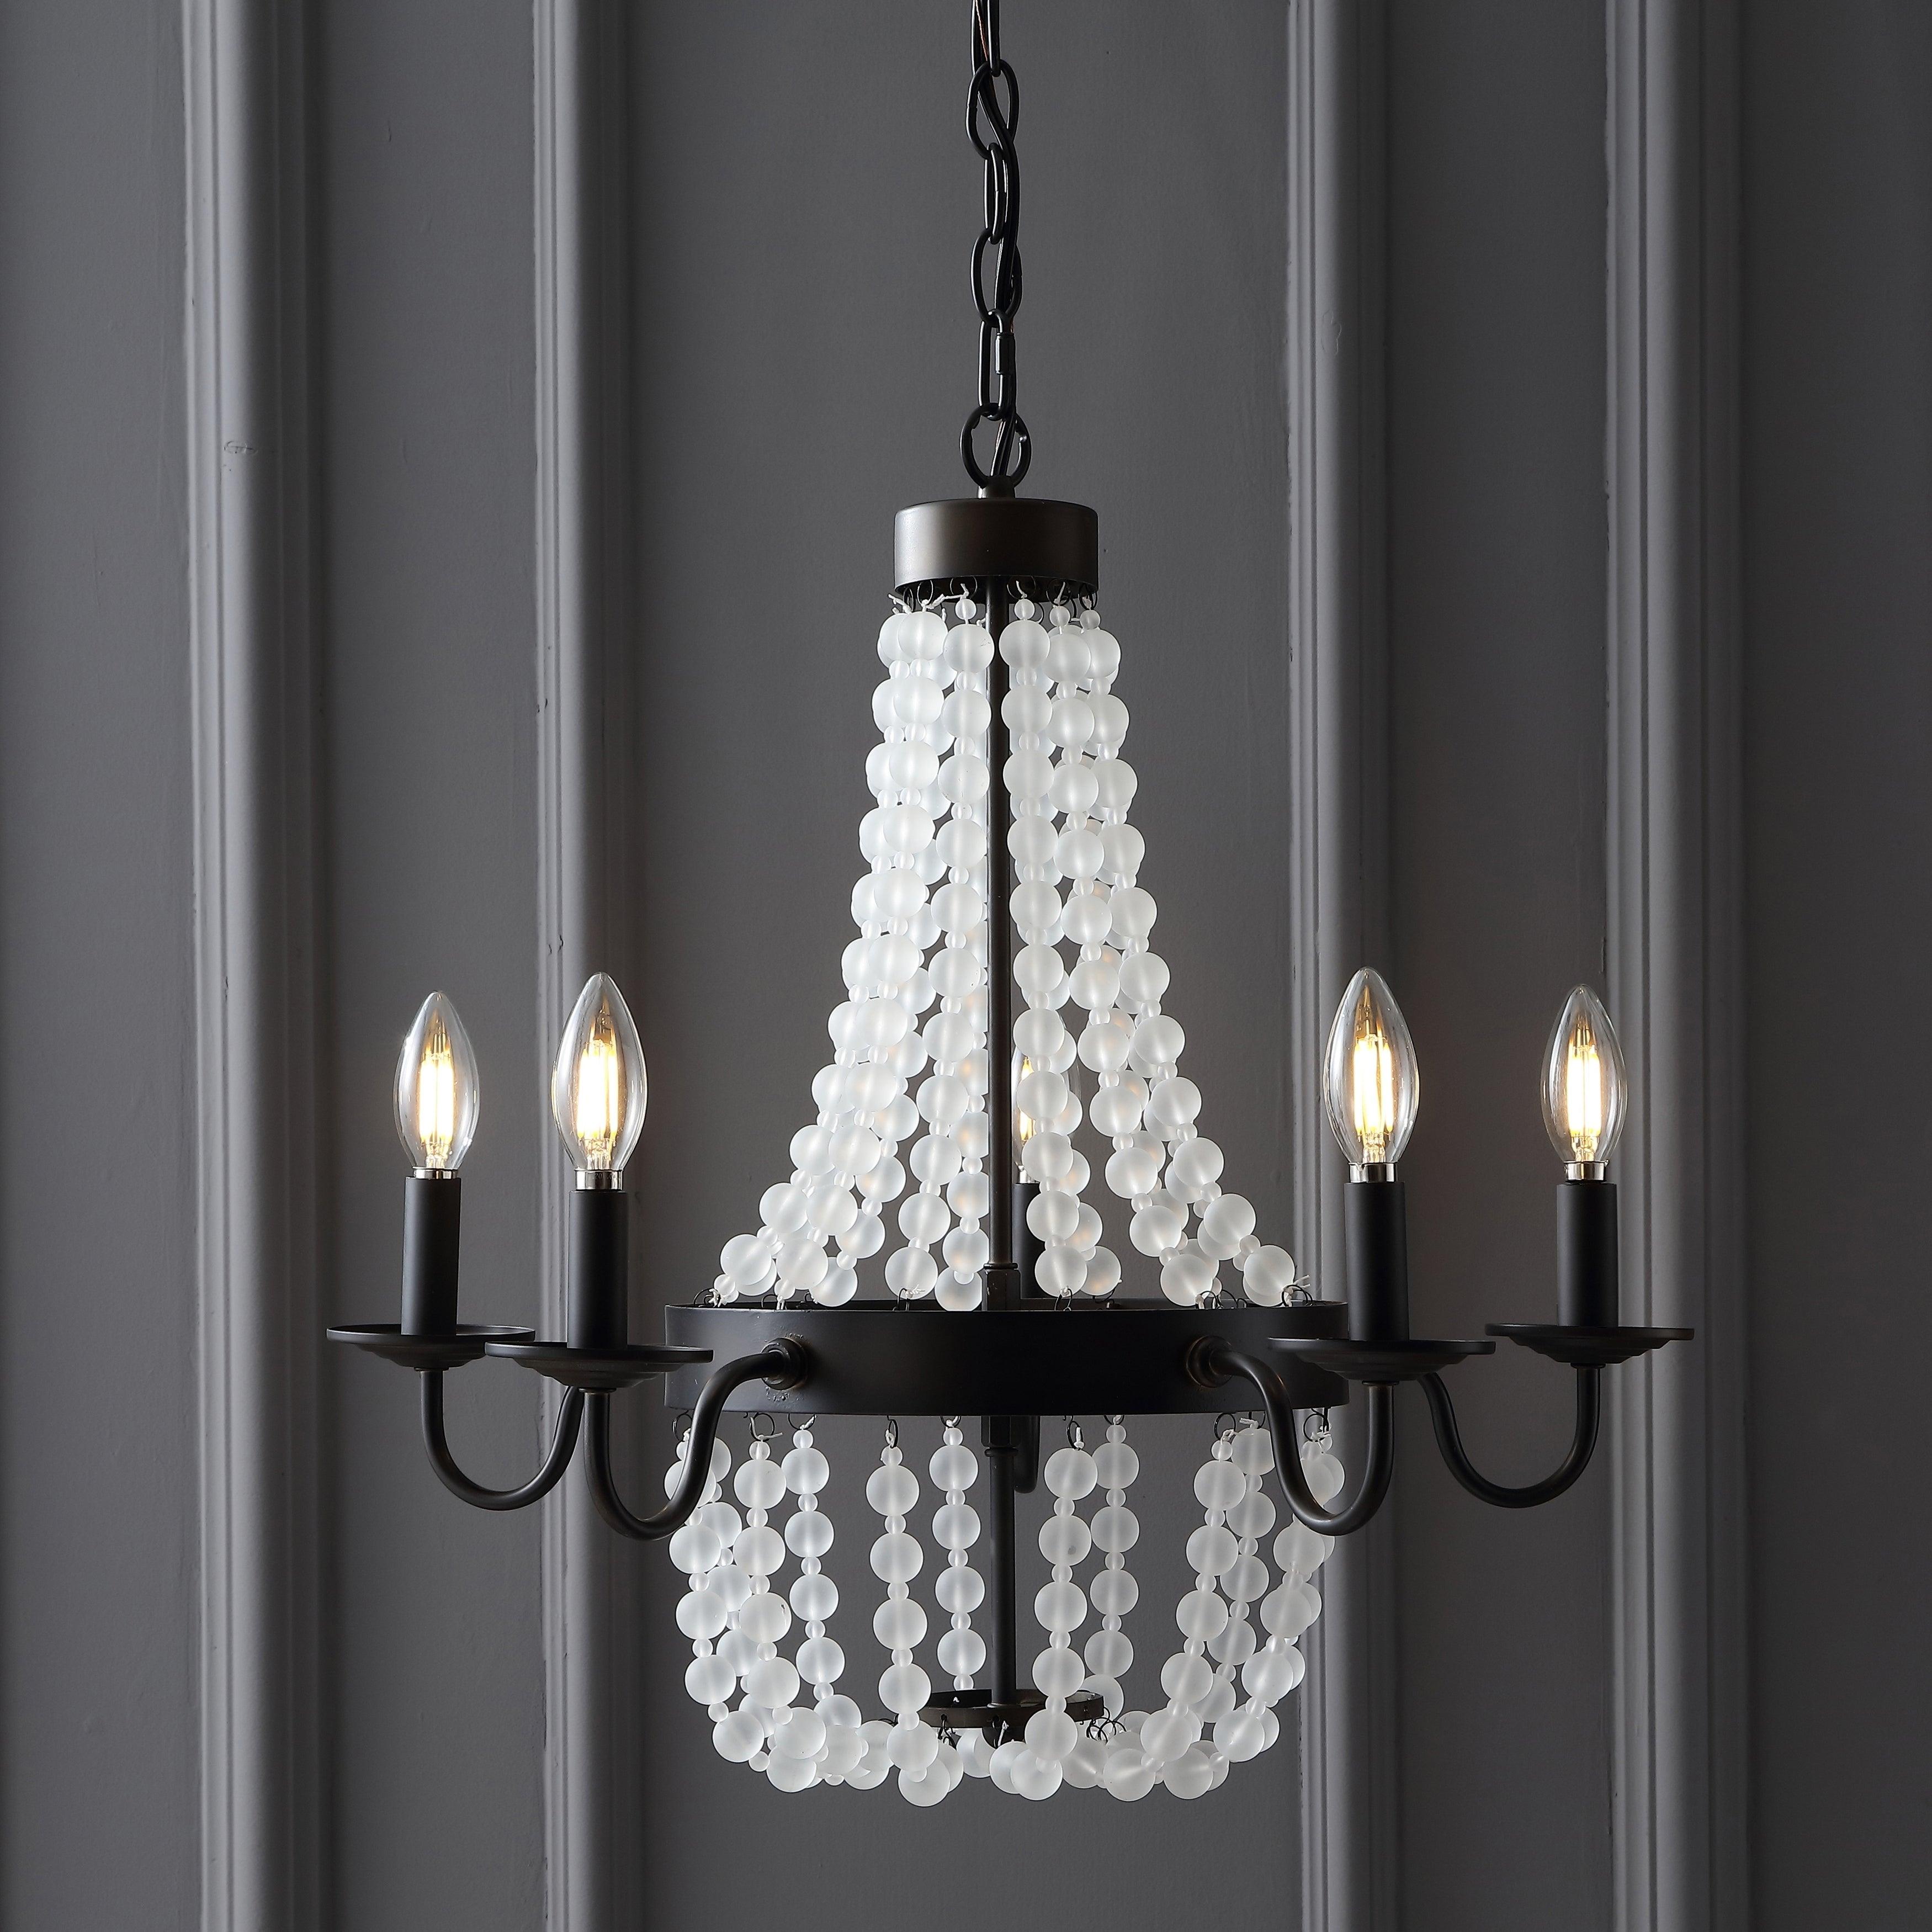 Nova 5 Light 215 Acrylic Beaded LED Chandelier